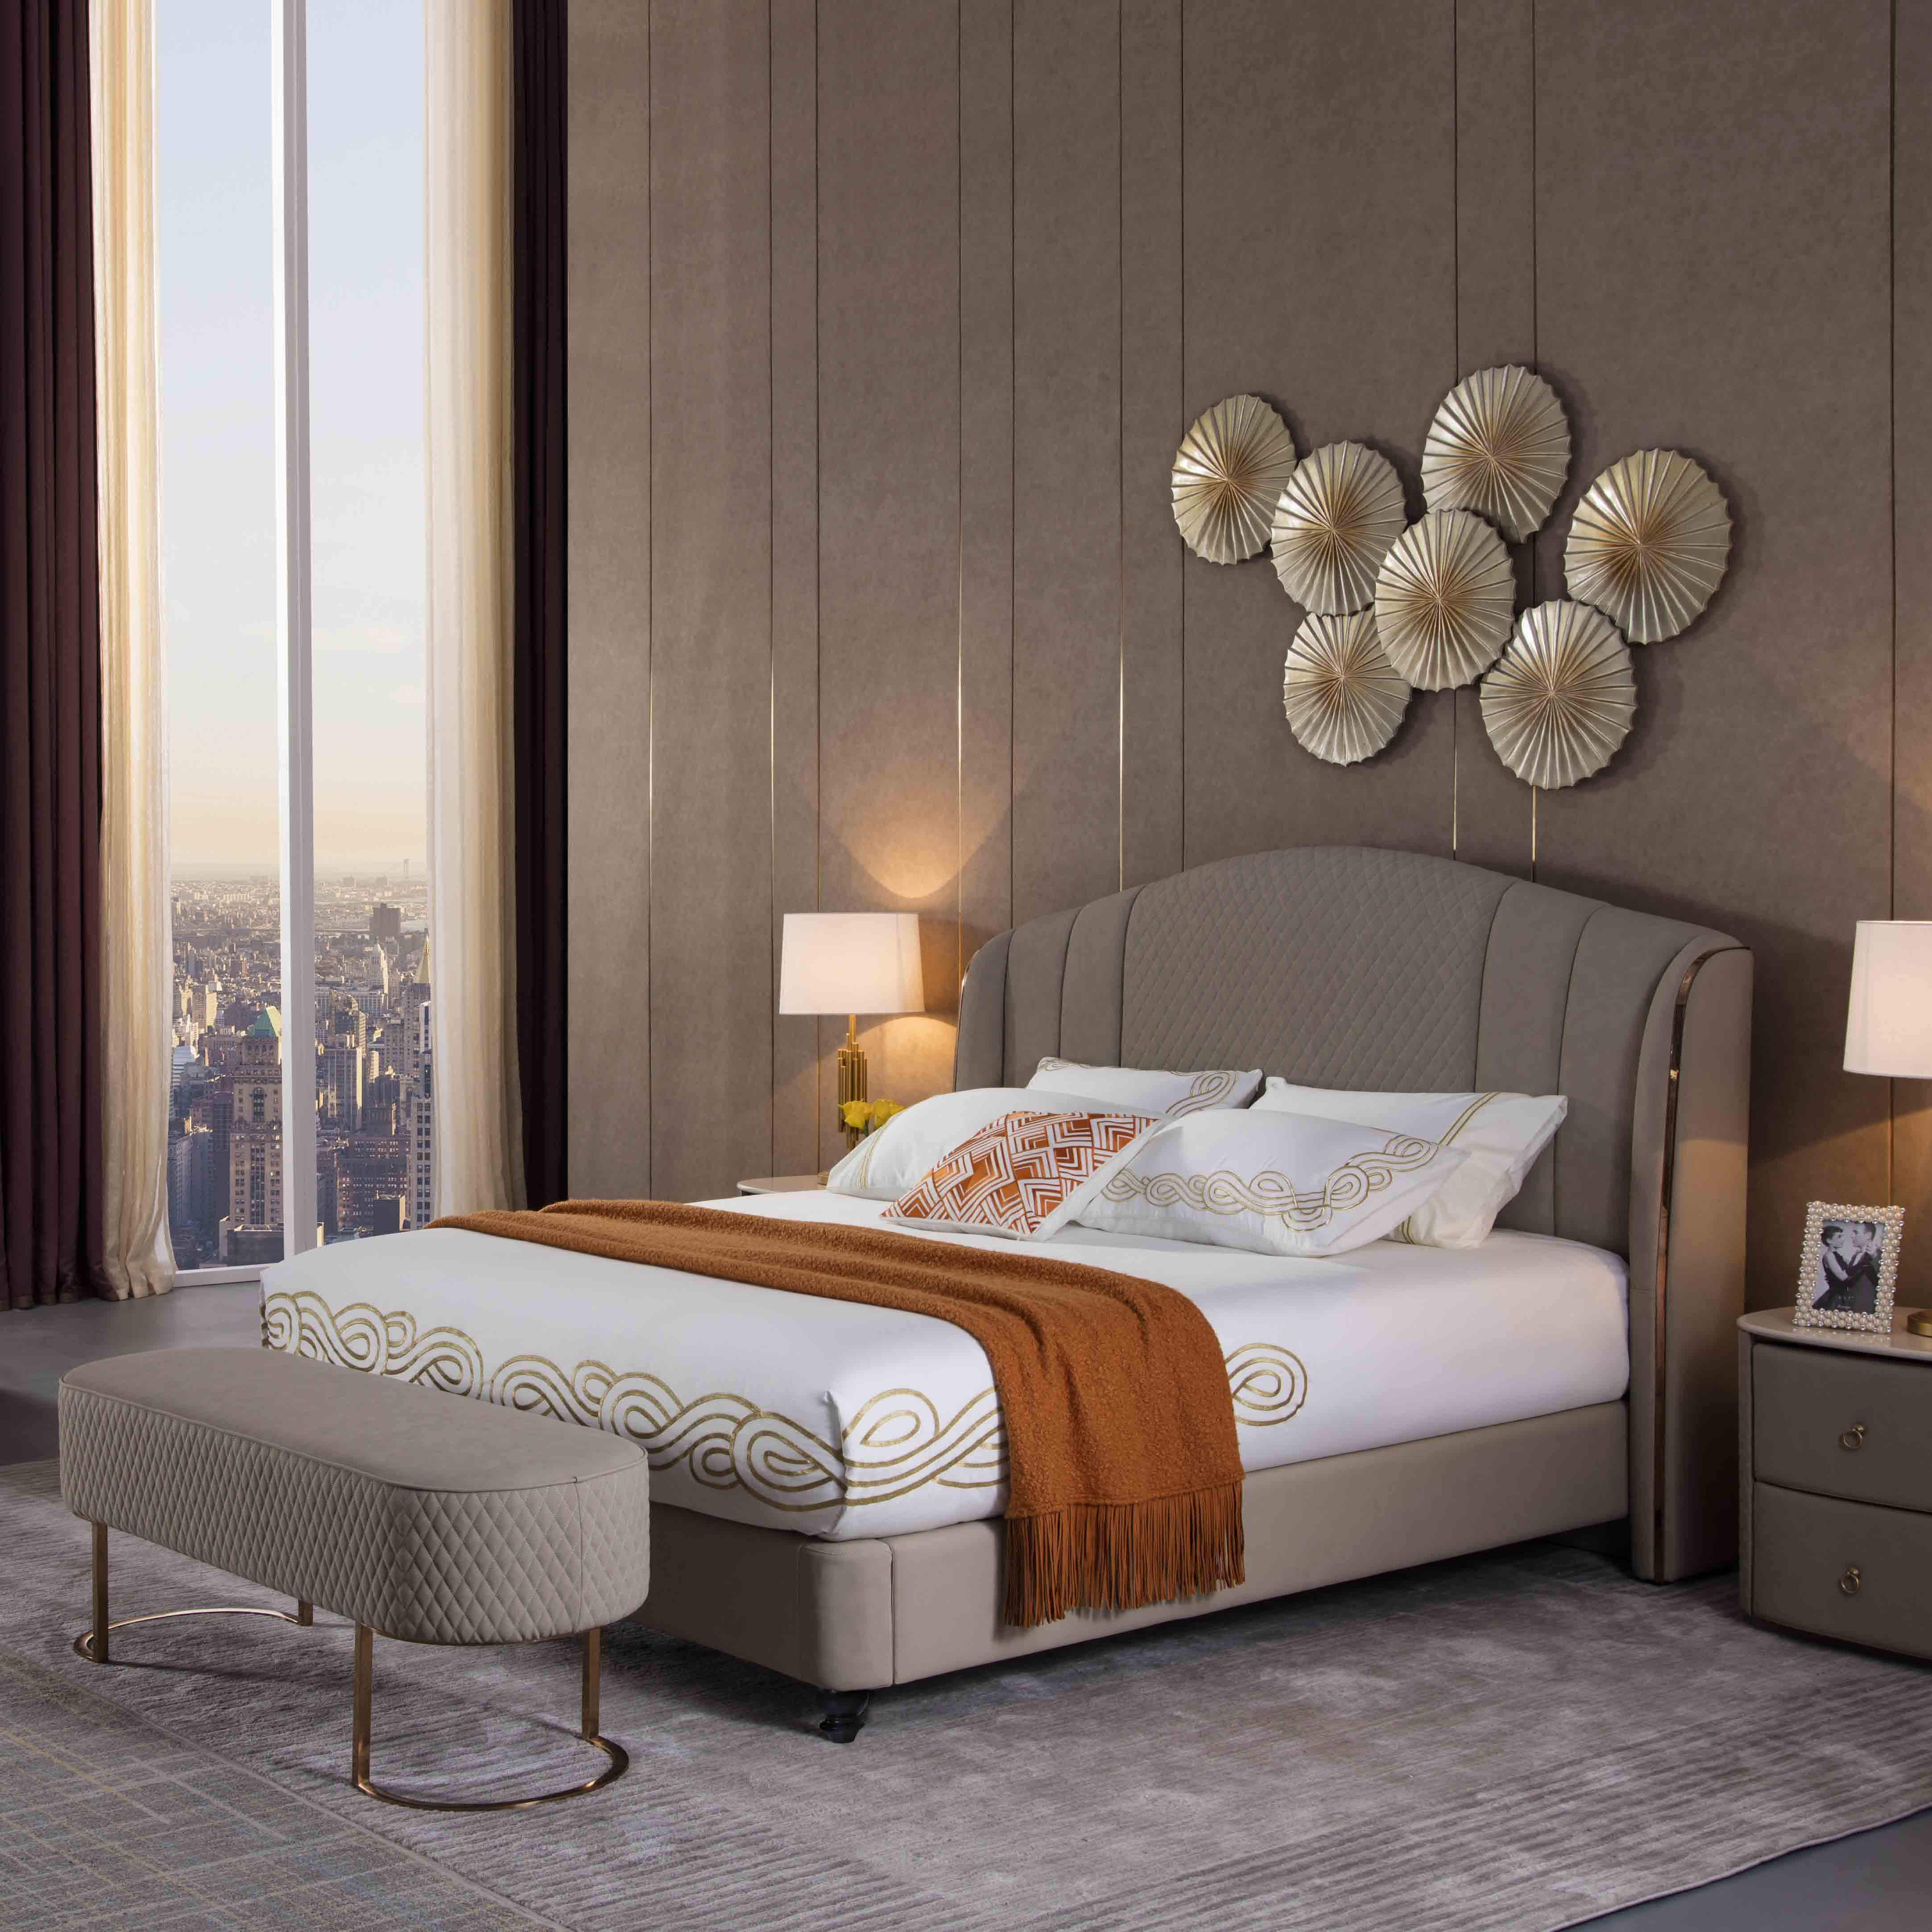 China Double Bed Design Furniture China Double Bed Design Furniture Manufacturers And Suppliers On Alibaba Com